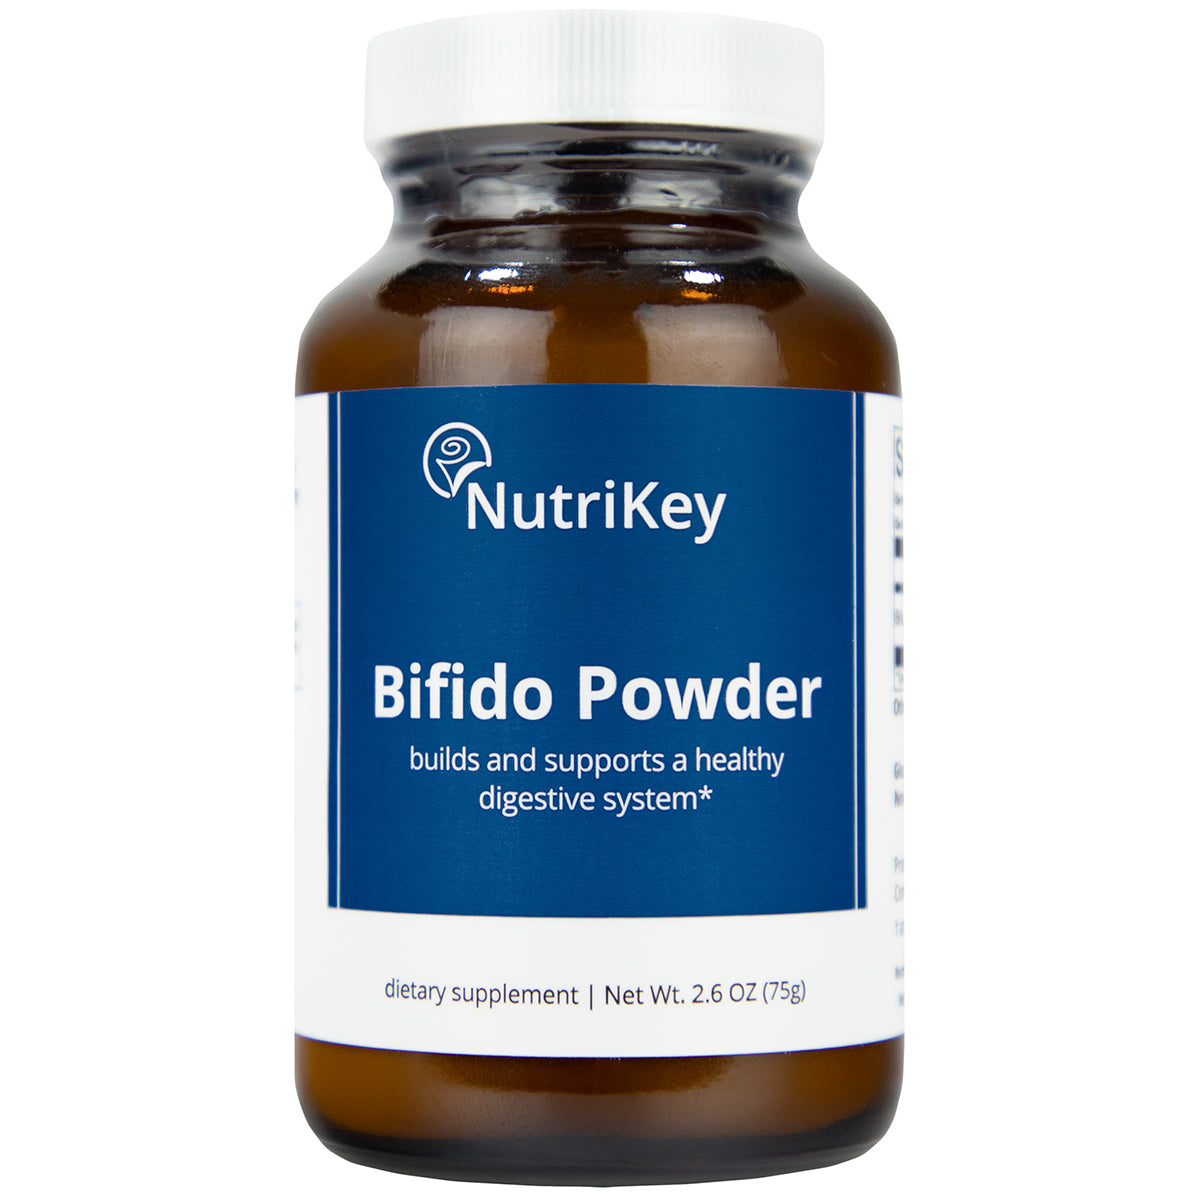 Bifido Powder, 2.6oz